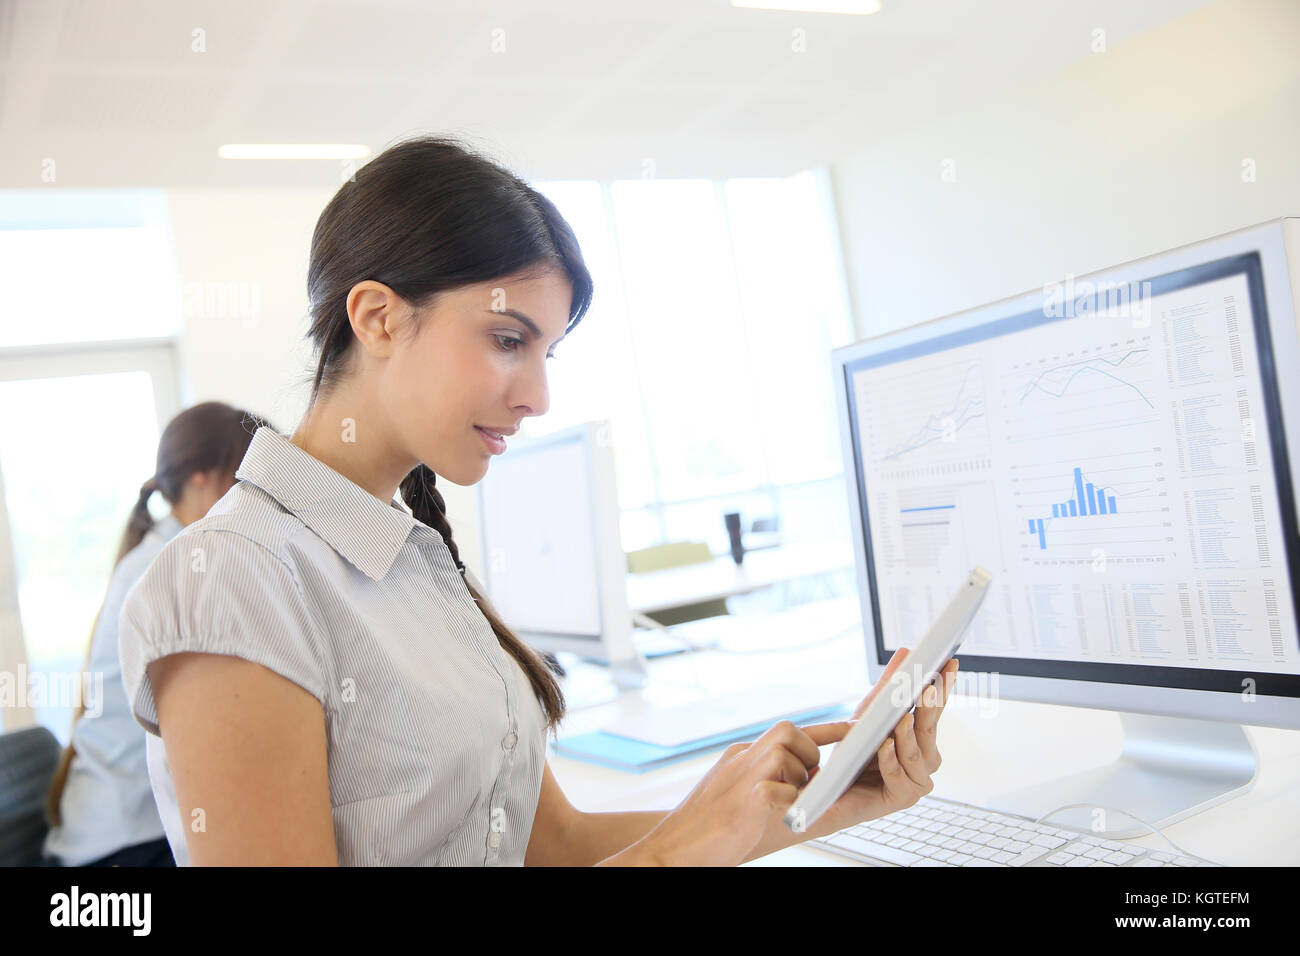 Young business girl working on digital tablet in office - Stock Image